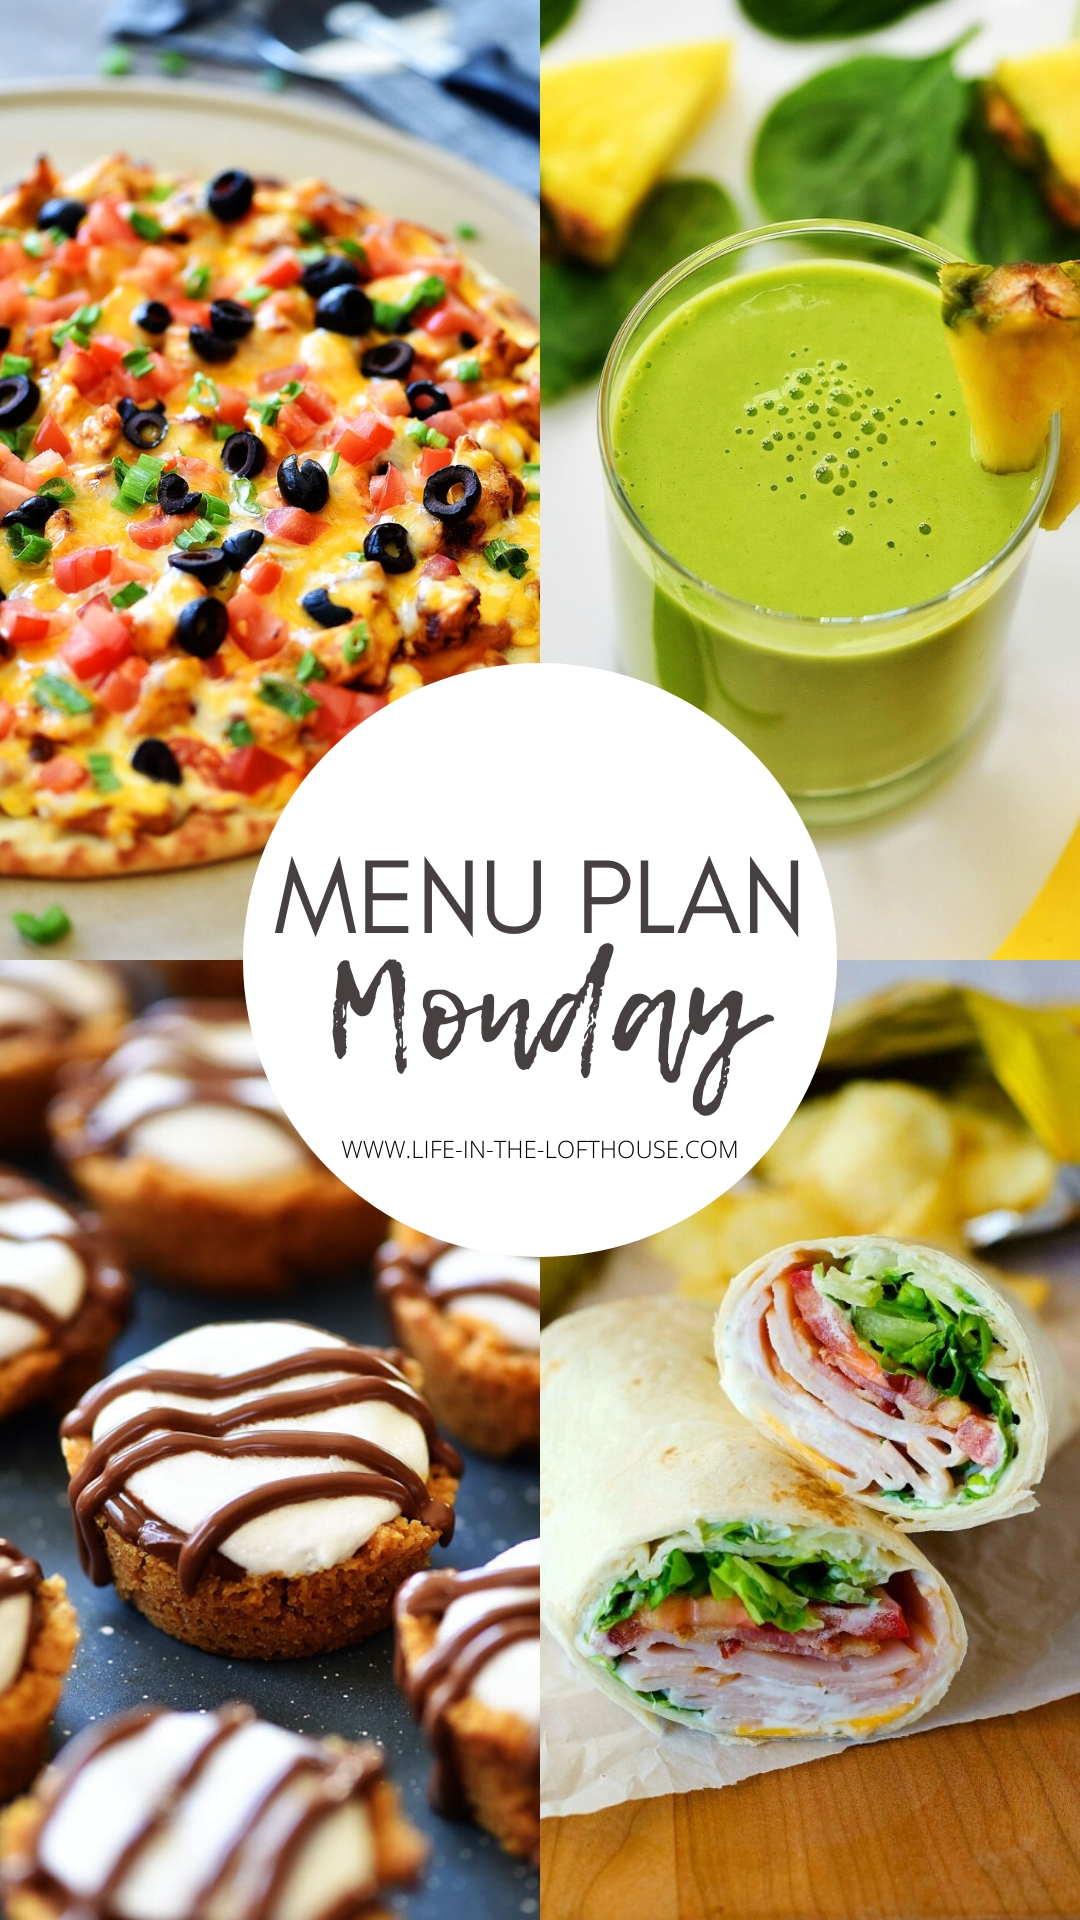 Menu Plan Monday is a weekly menu with delicious dinner recipes. Life-in-the-Lofthouse.com